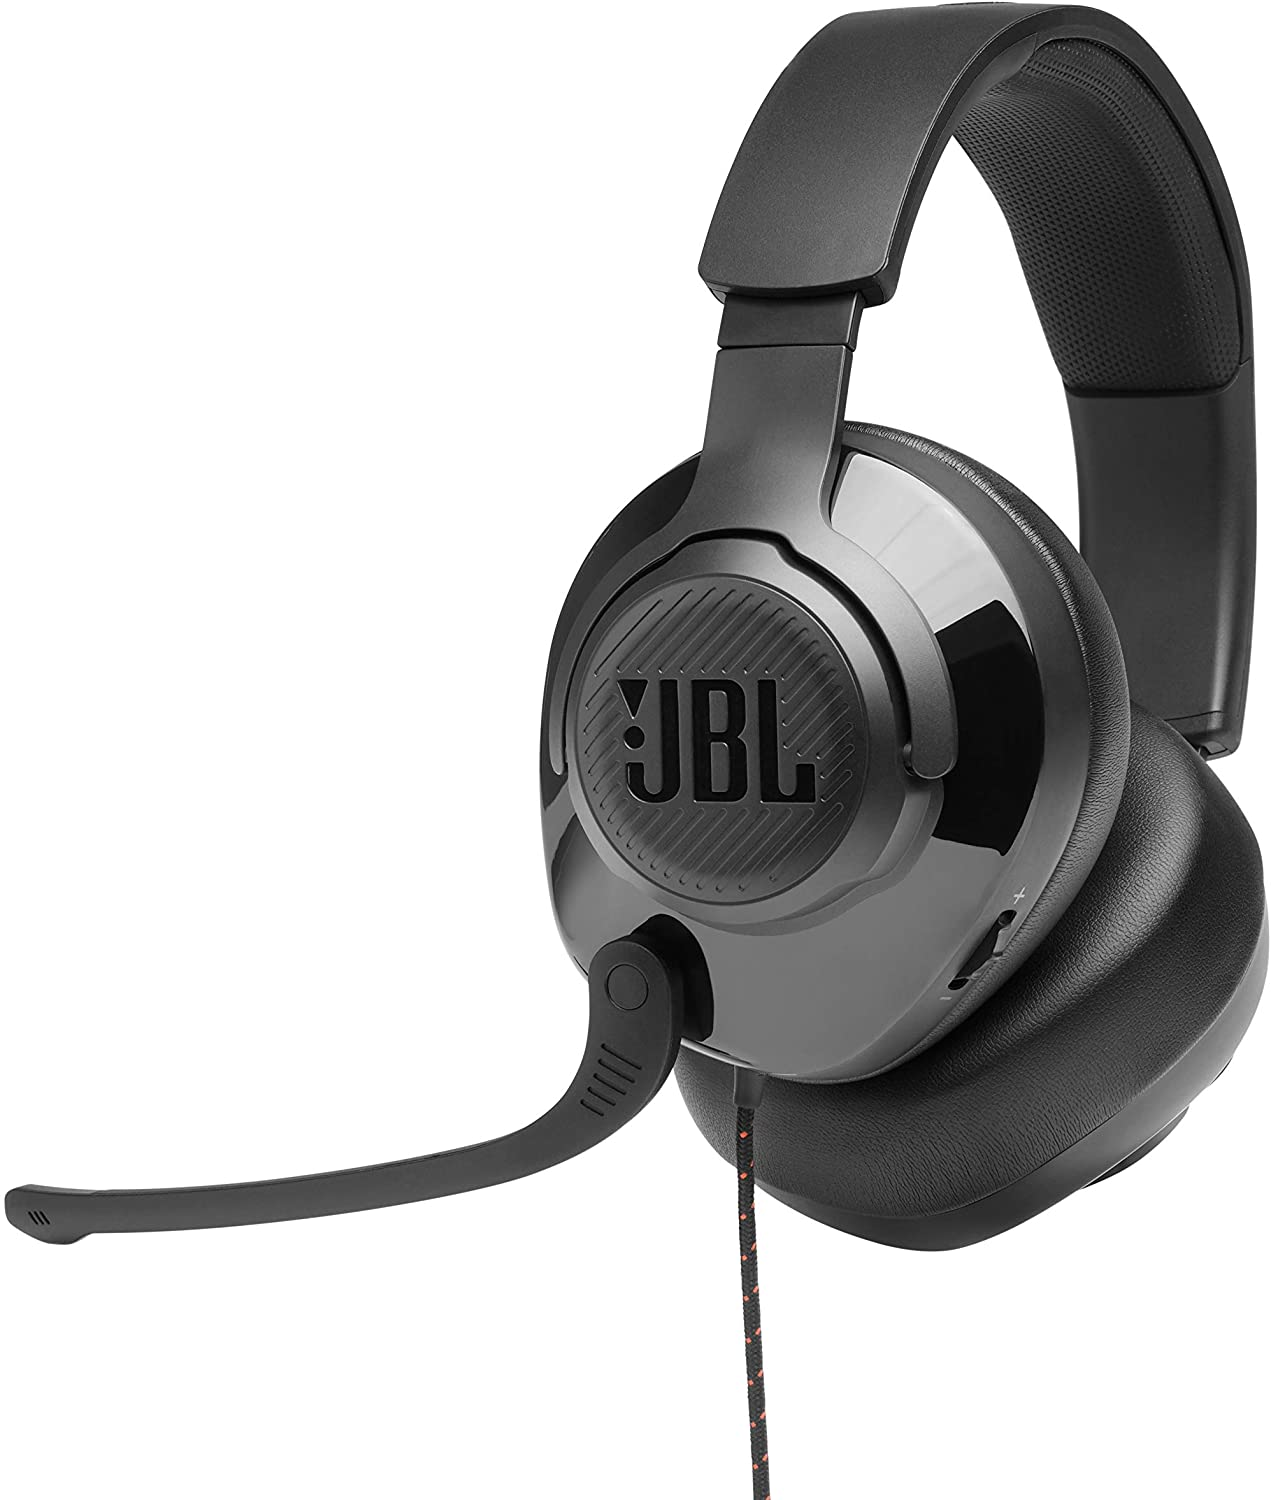 JBL Quantum 300, Over-Ear Wired Gaming Headset, Surround (Black)